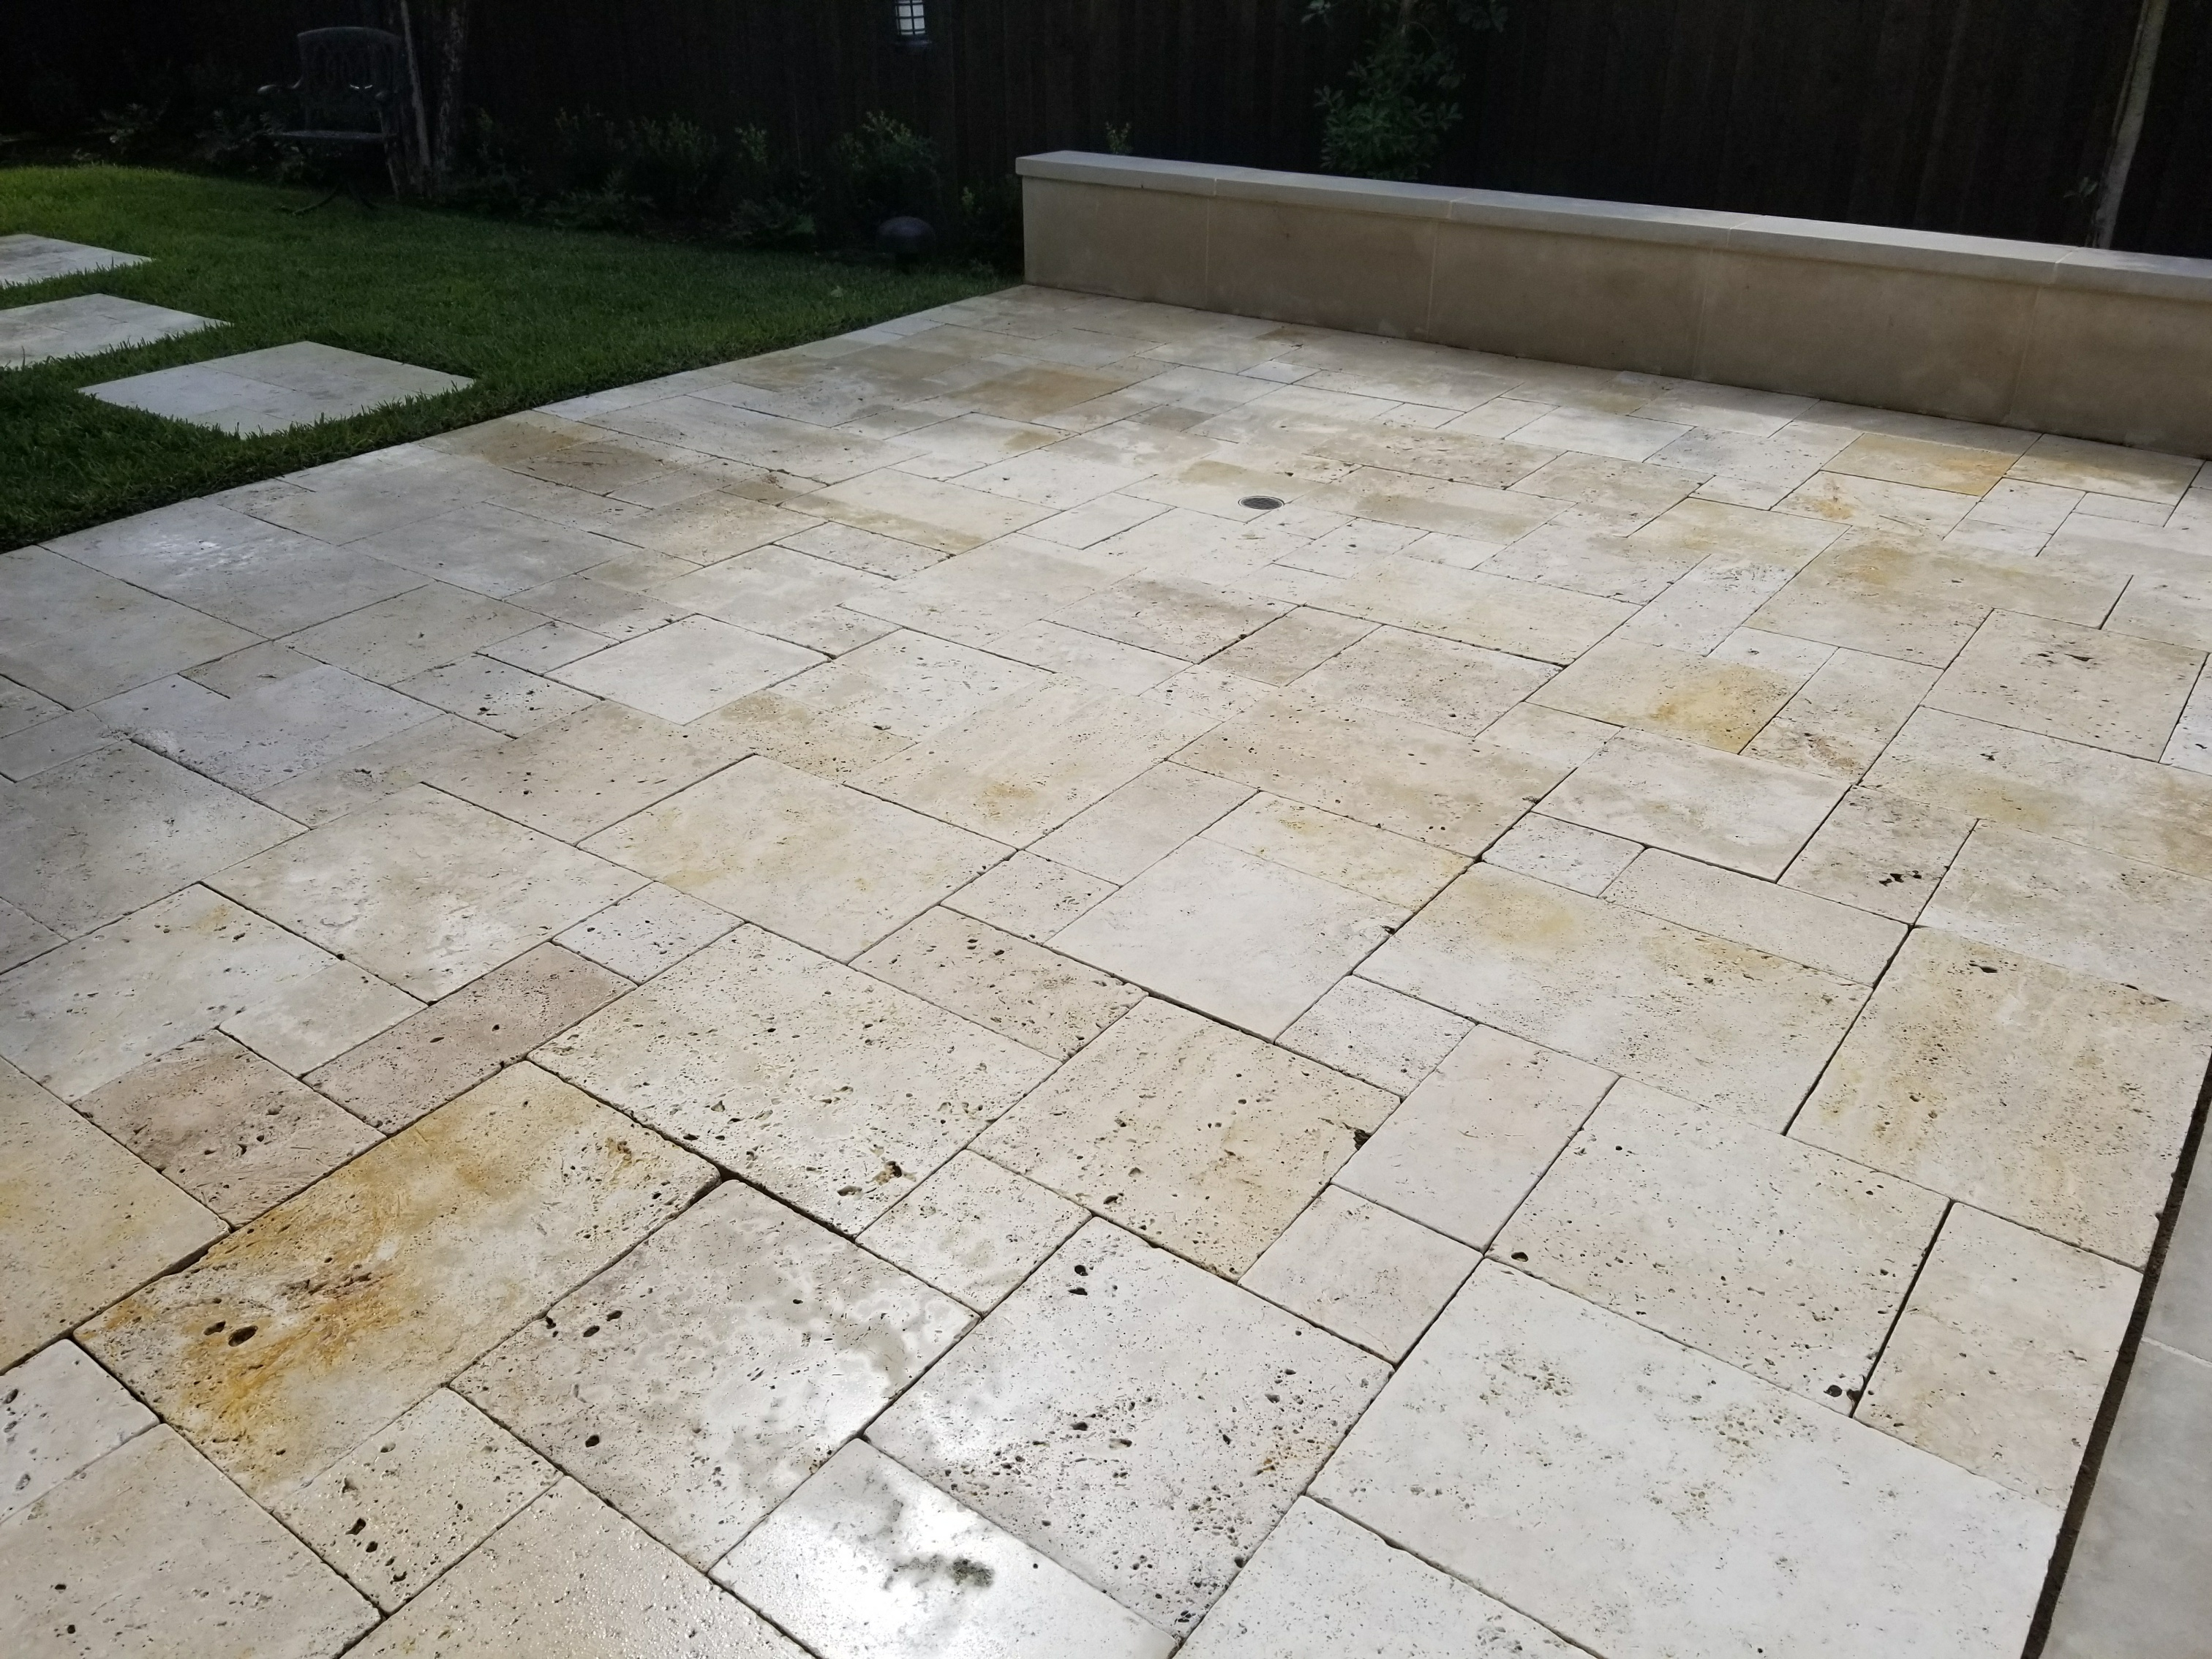 How To Keep Your Exterior Travertine Tile Looking Tip Top